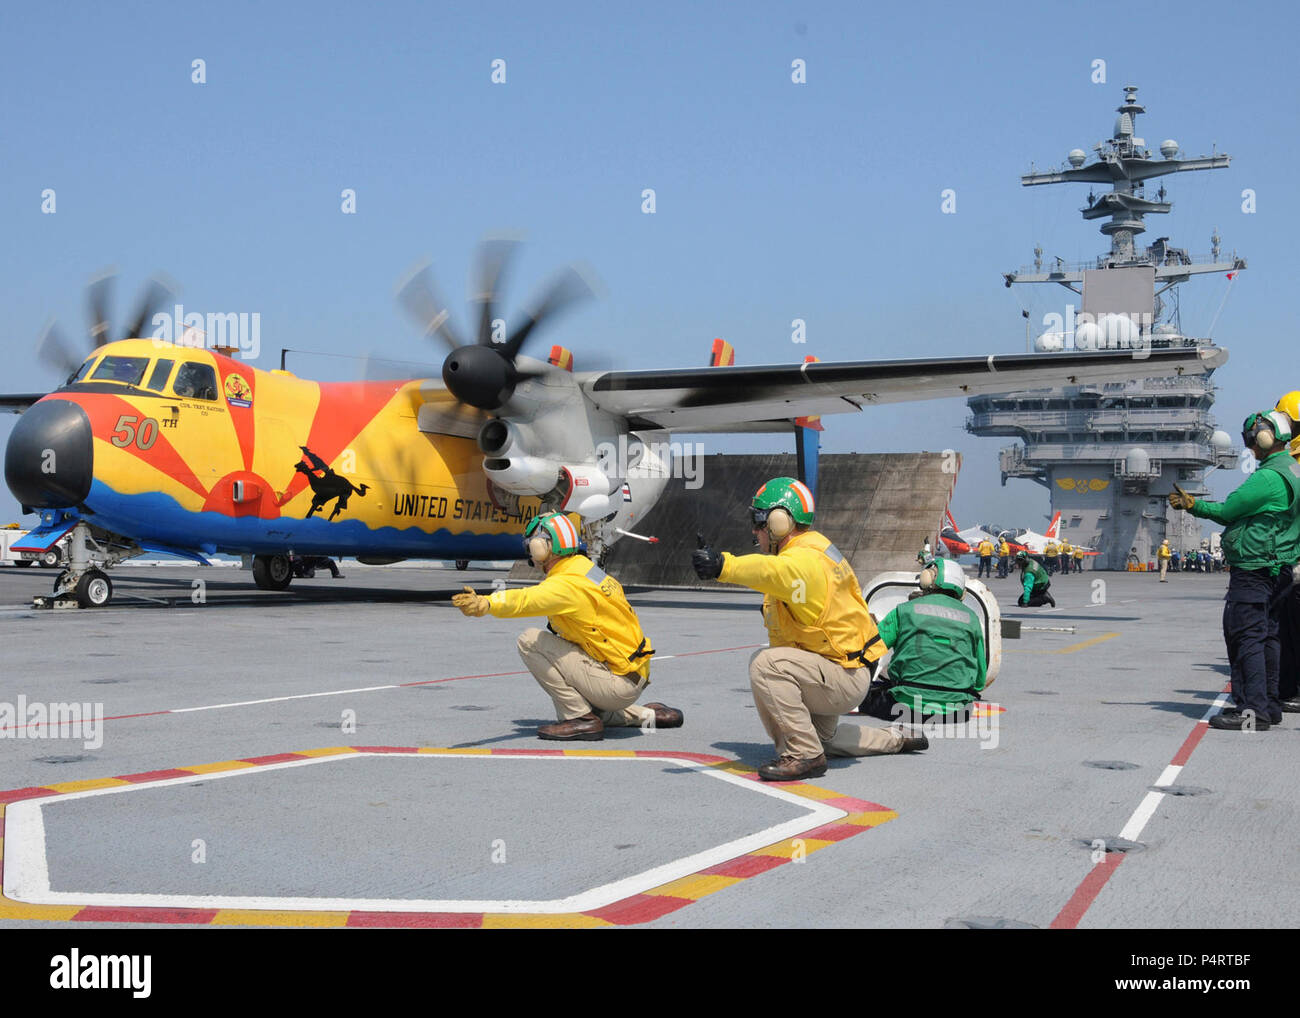 U.S. Navy shooters launch a C-2A Greyhound aircraft assigned to Fleet Logistics Support Squadron 40 from aboard the aircraft carrier USS George H.W. Bush (CVN 77) June 11, 2010, while conducting training operations in the Atlantic Ocean. (DoD Stock Photo